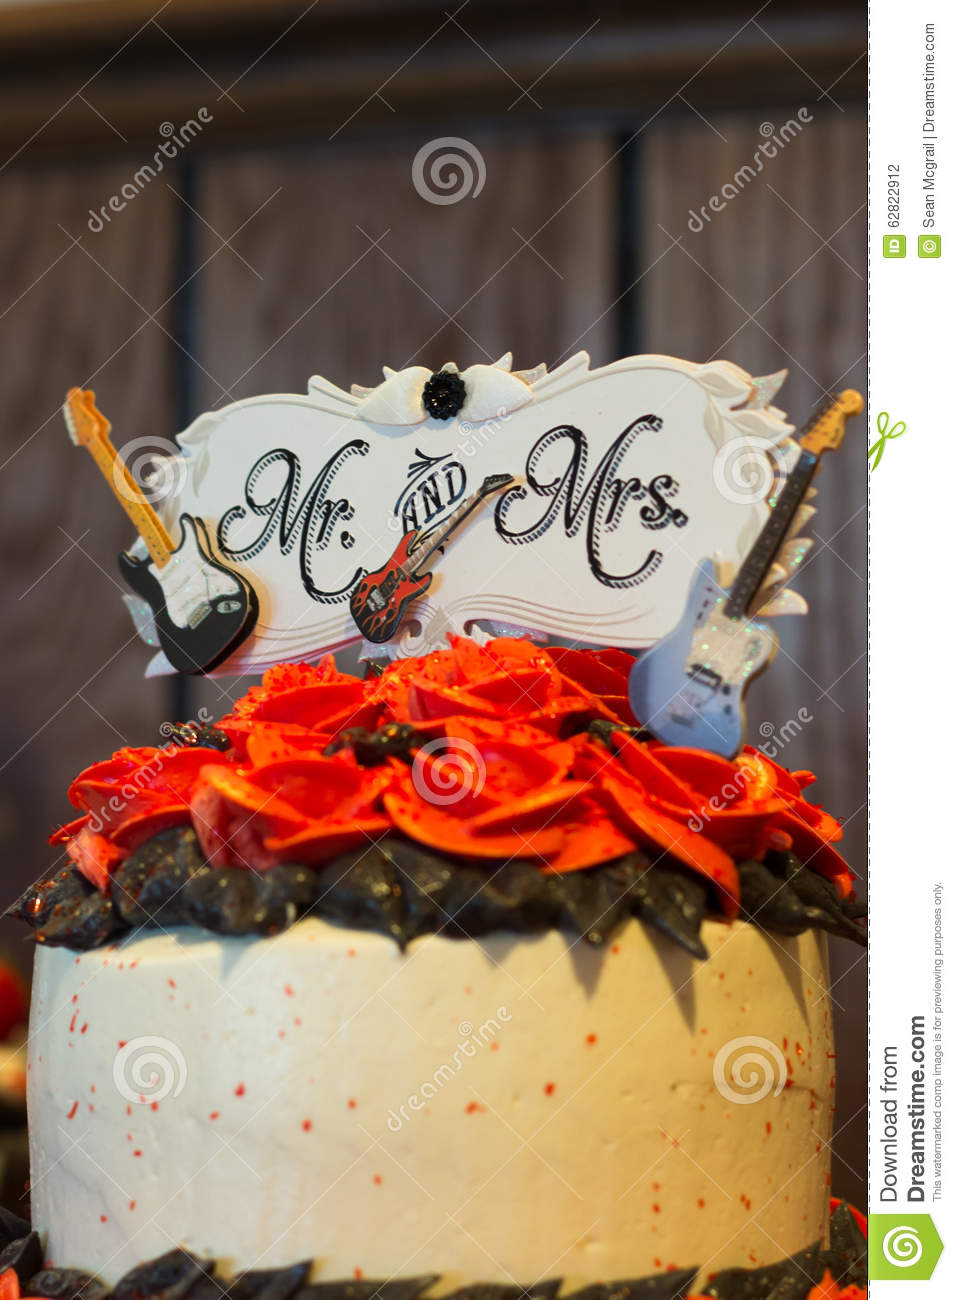 rock themed wedding cakes rock and roll wedding cake stock photo image 62822912 19252